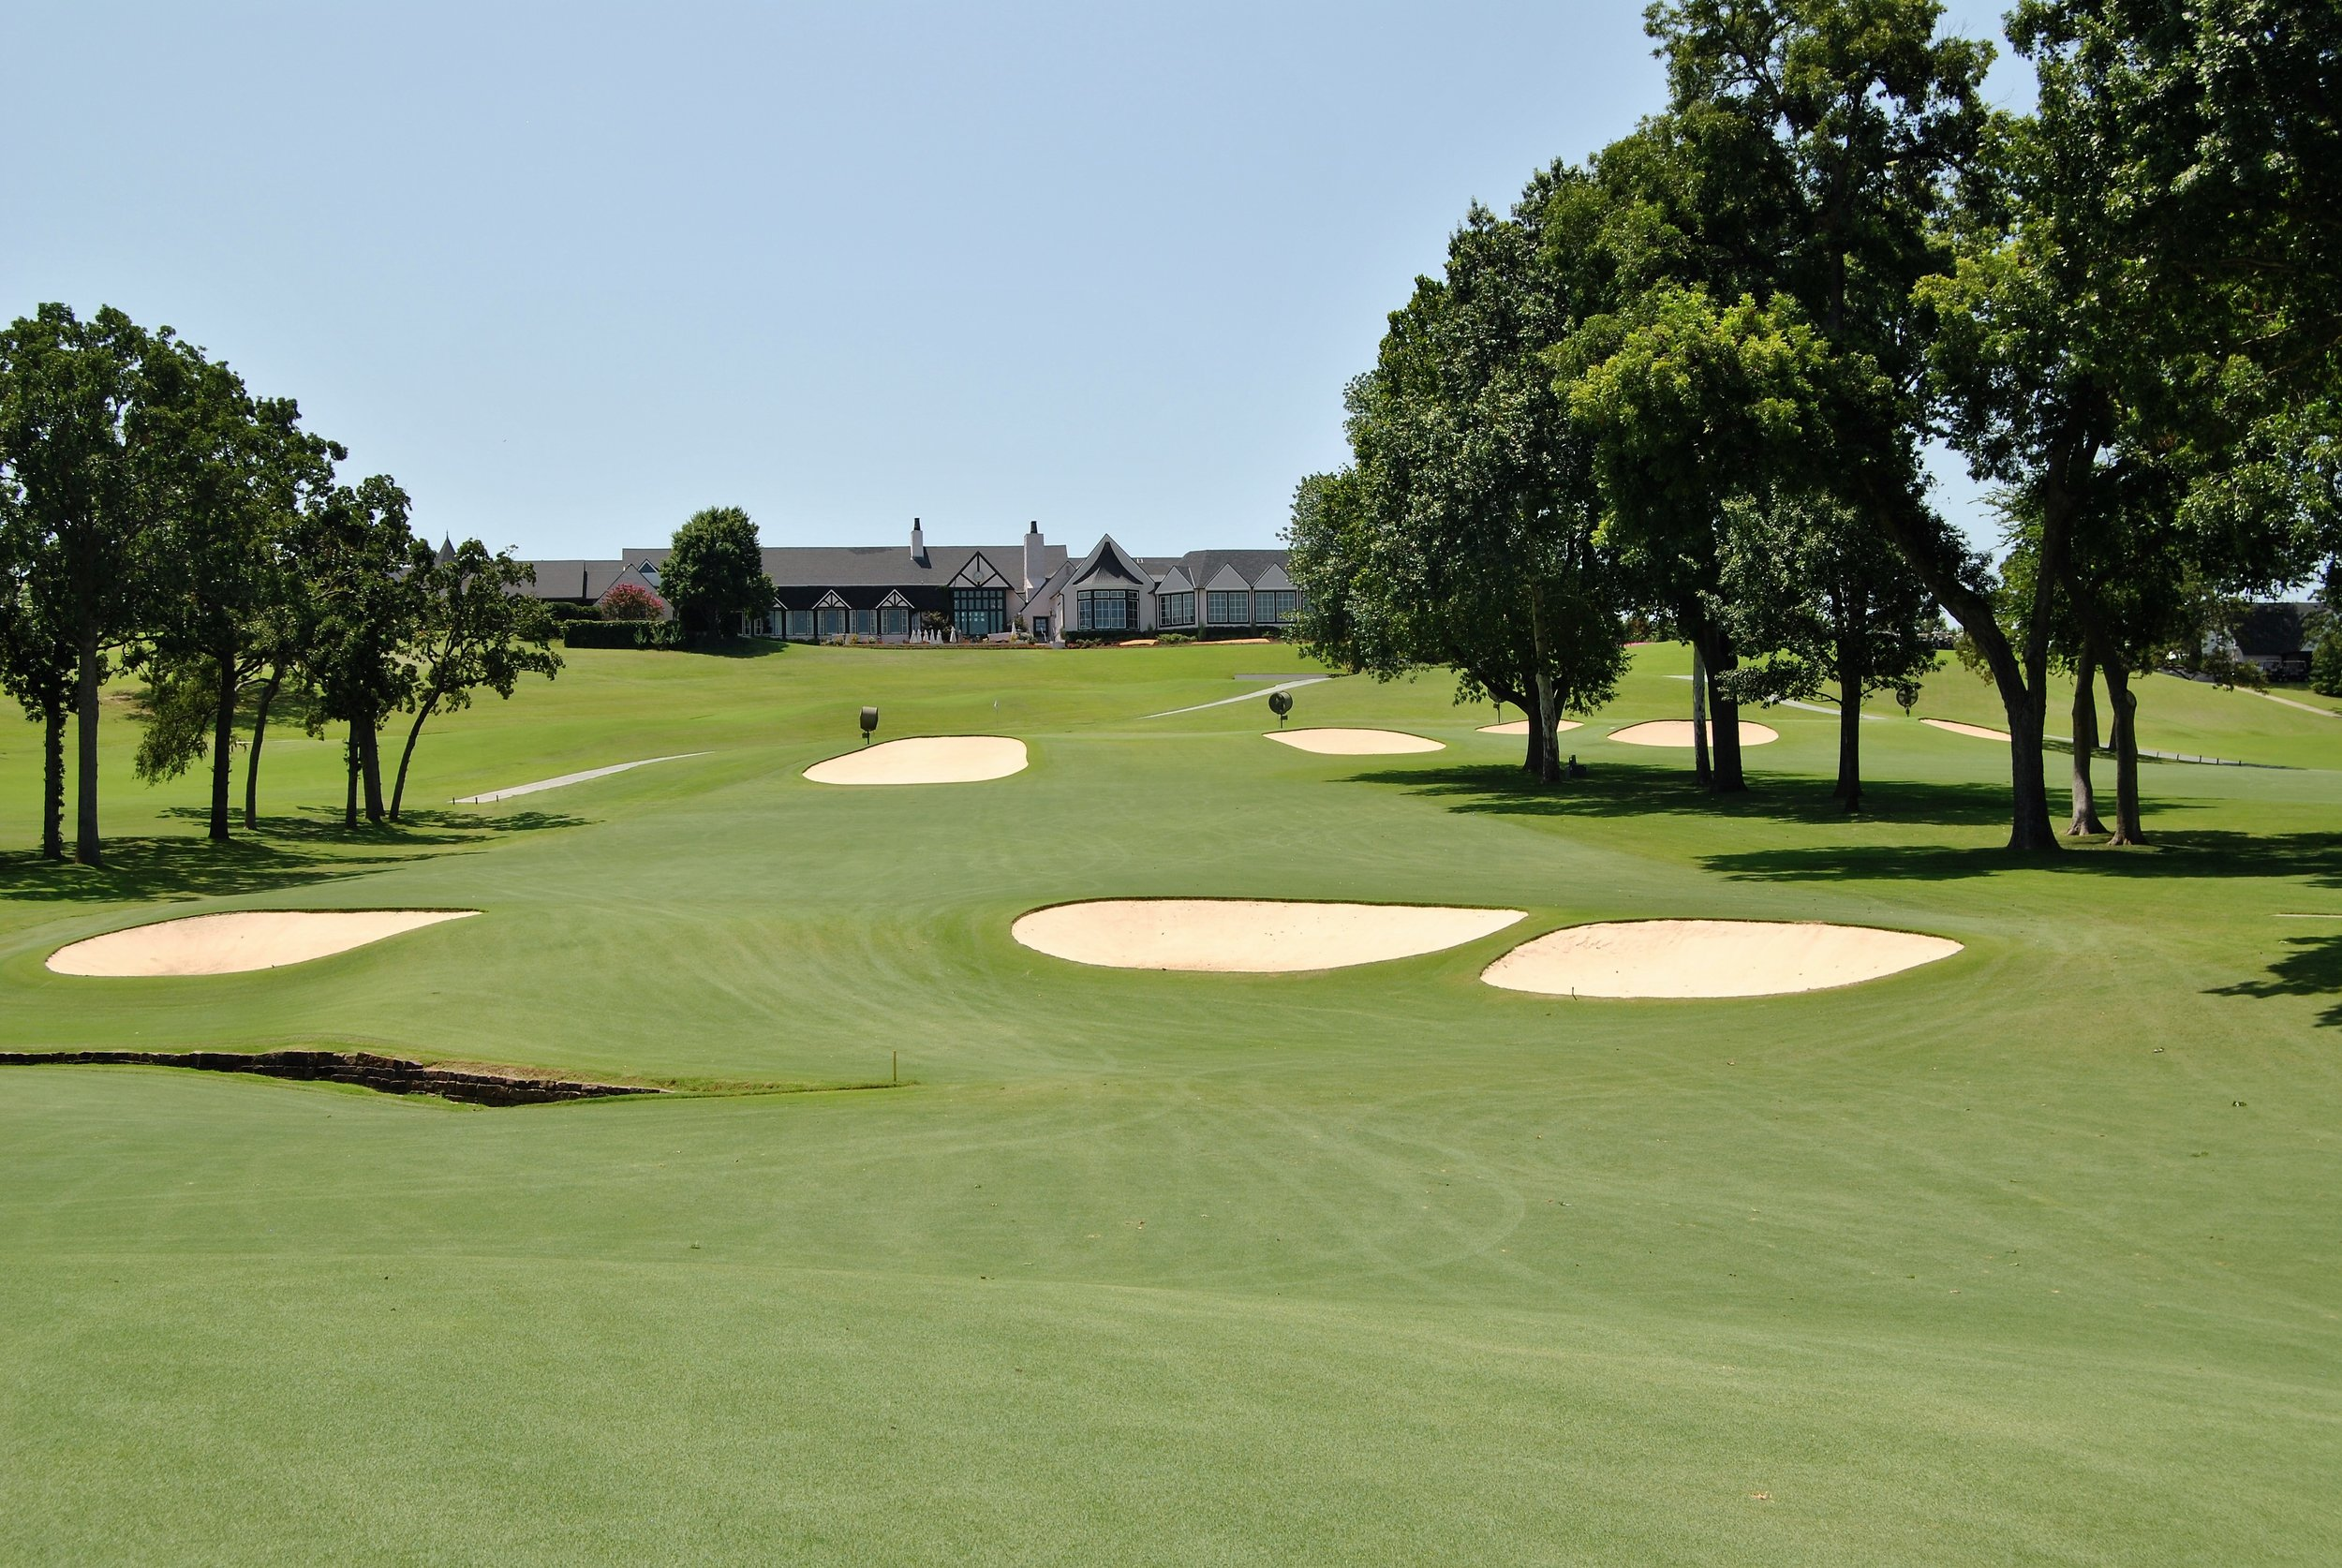 The approach to the 18th green with the country club in the background